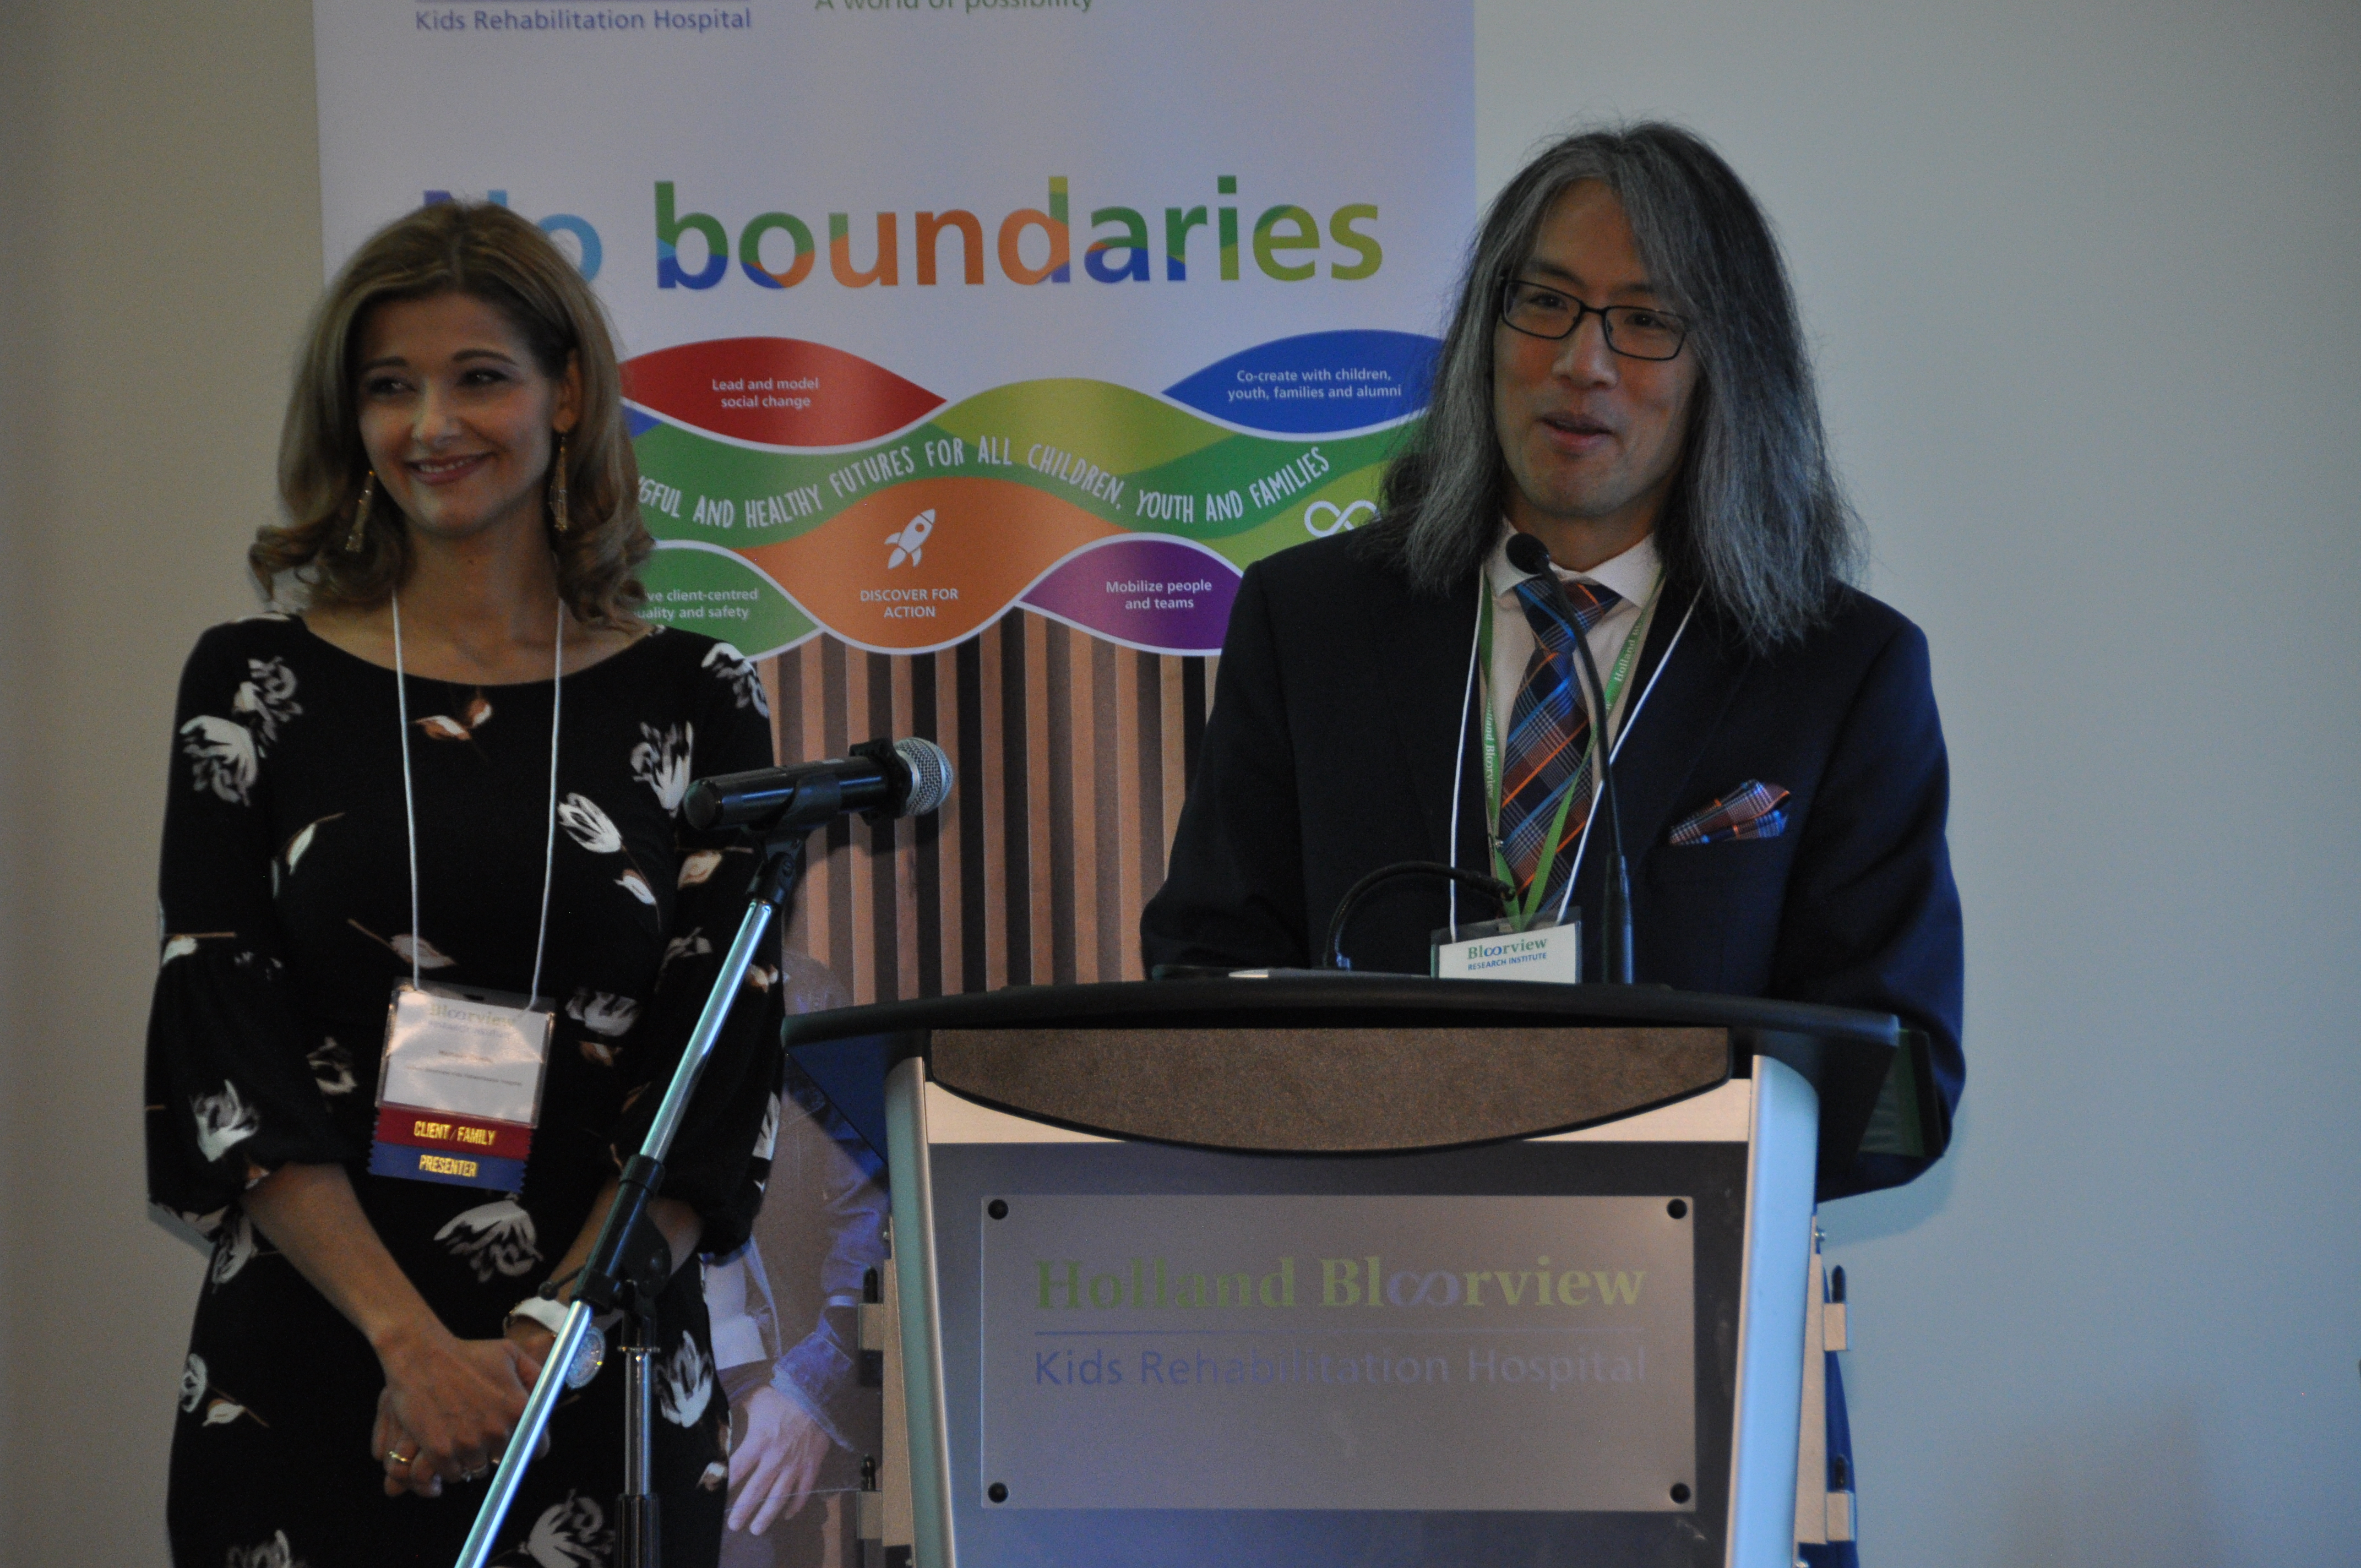 Manuela Comito, family leader, Holland Bloorview; and Tom Chau, vice-president of research at Holland Bloorview co-host the event